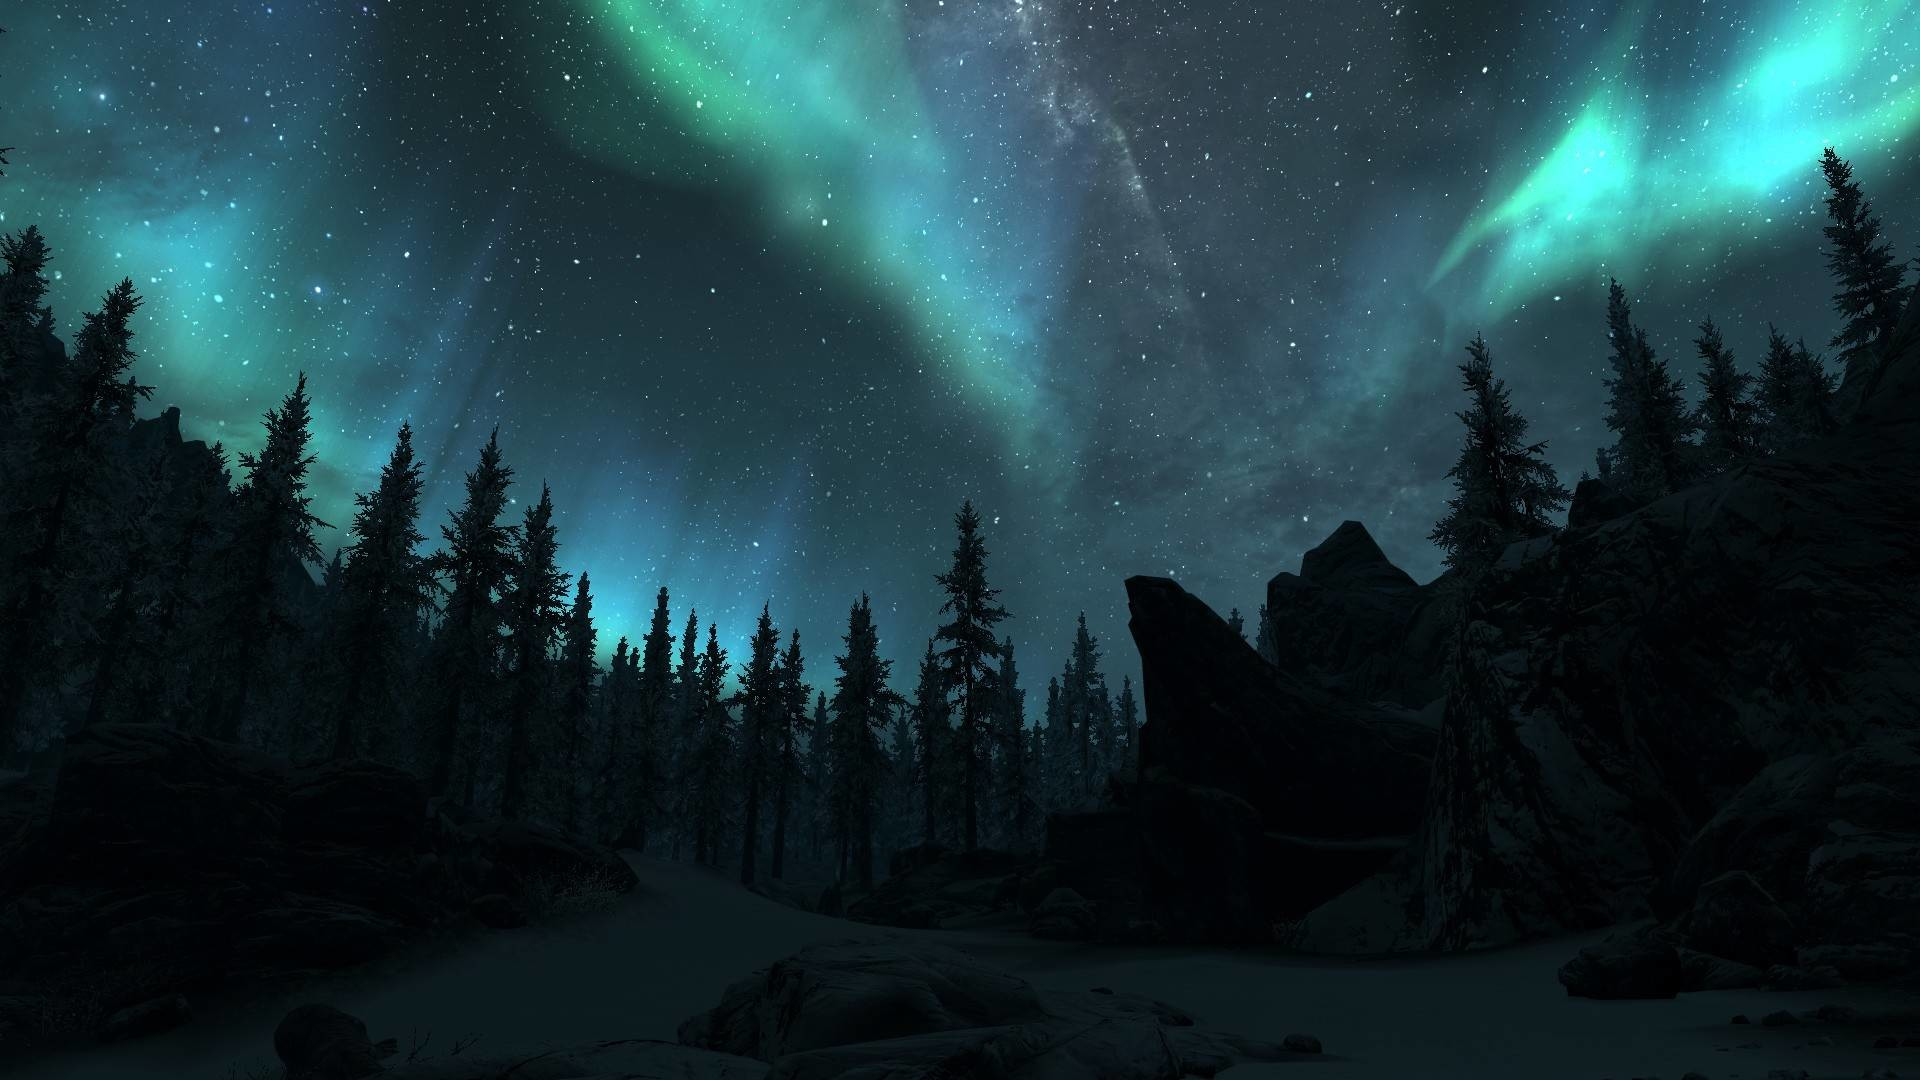 1920x1080 Northern Lights Wallpaper  Northern lights,